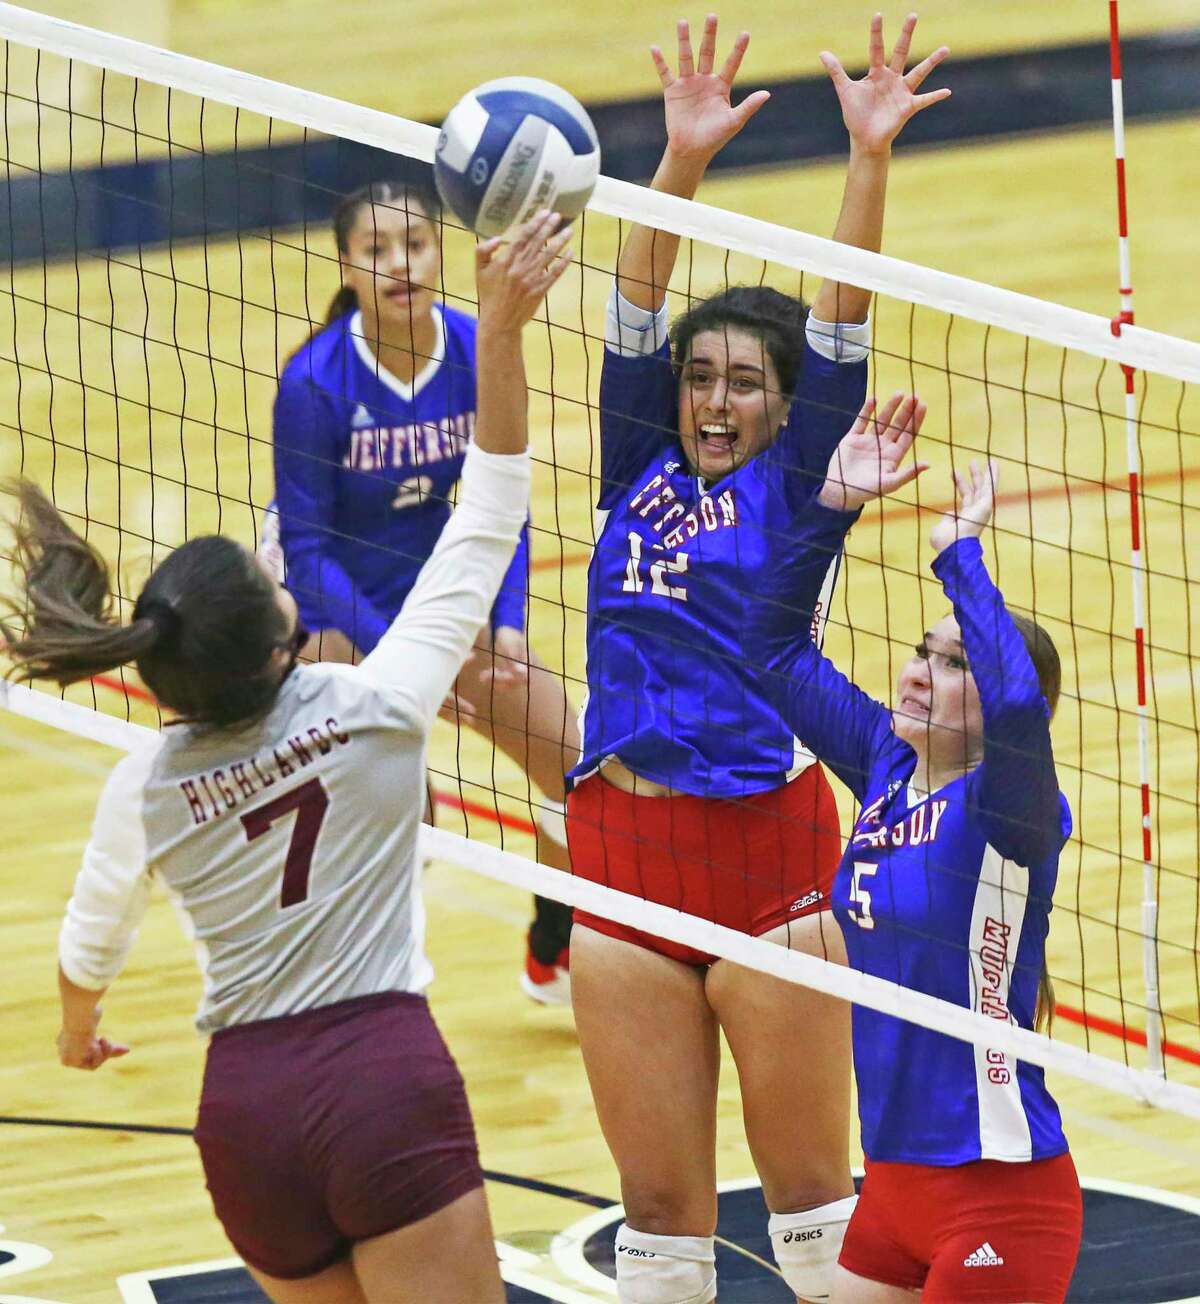 Mustang defenders Jessa Torres (12) and Vanessa Segura try to stop a shot by Briana Conteras as Highlands beats Jefferson 3-0 in volleyball at Alamo Convocation Center on Oct.20, 2020.